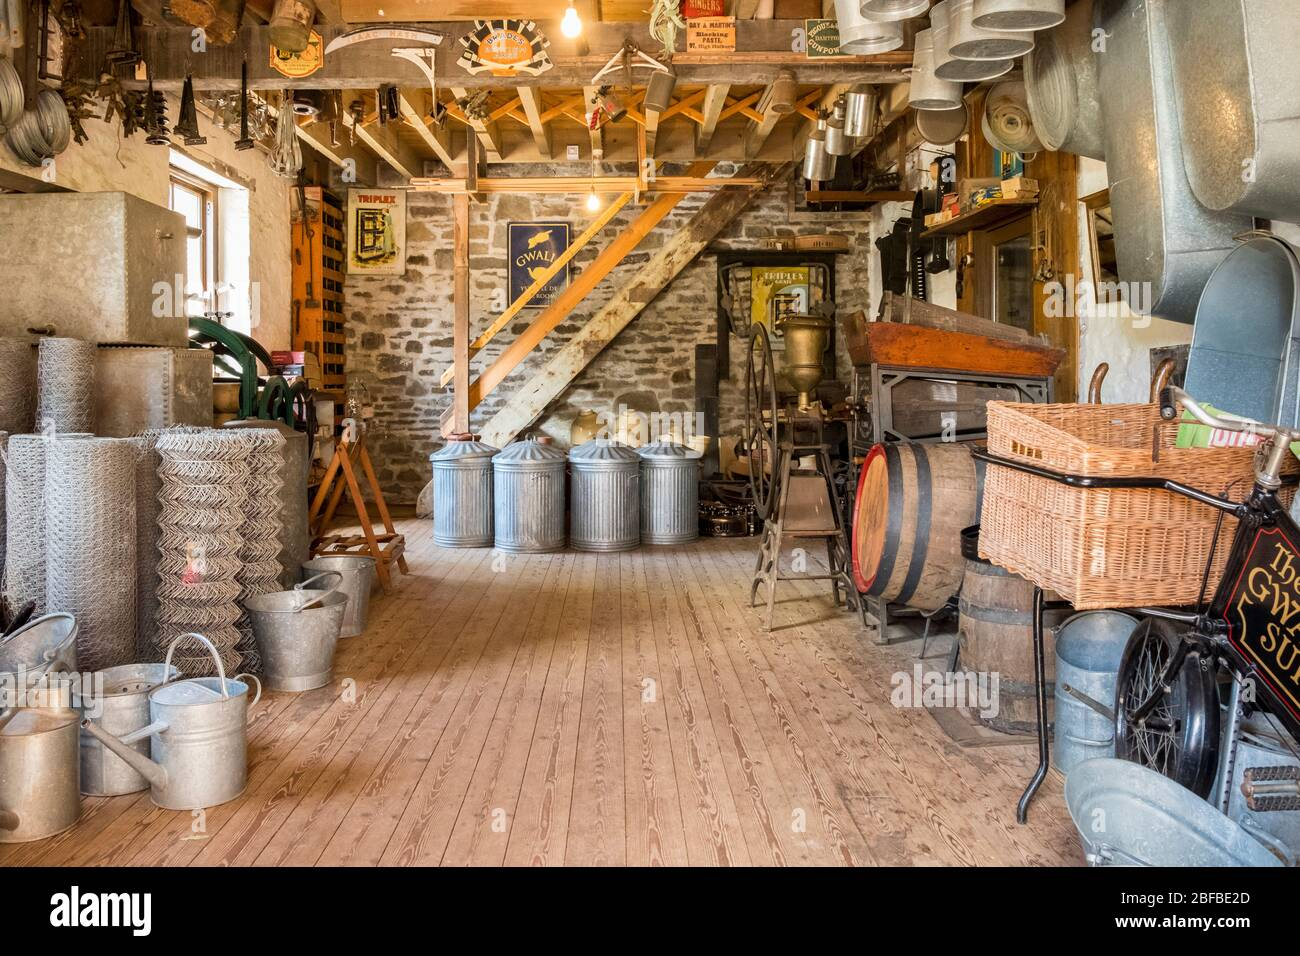 Gwalia Stores at St Fagans National Museum of History, Cardiff, Wales, GB, UK Stock Photo